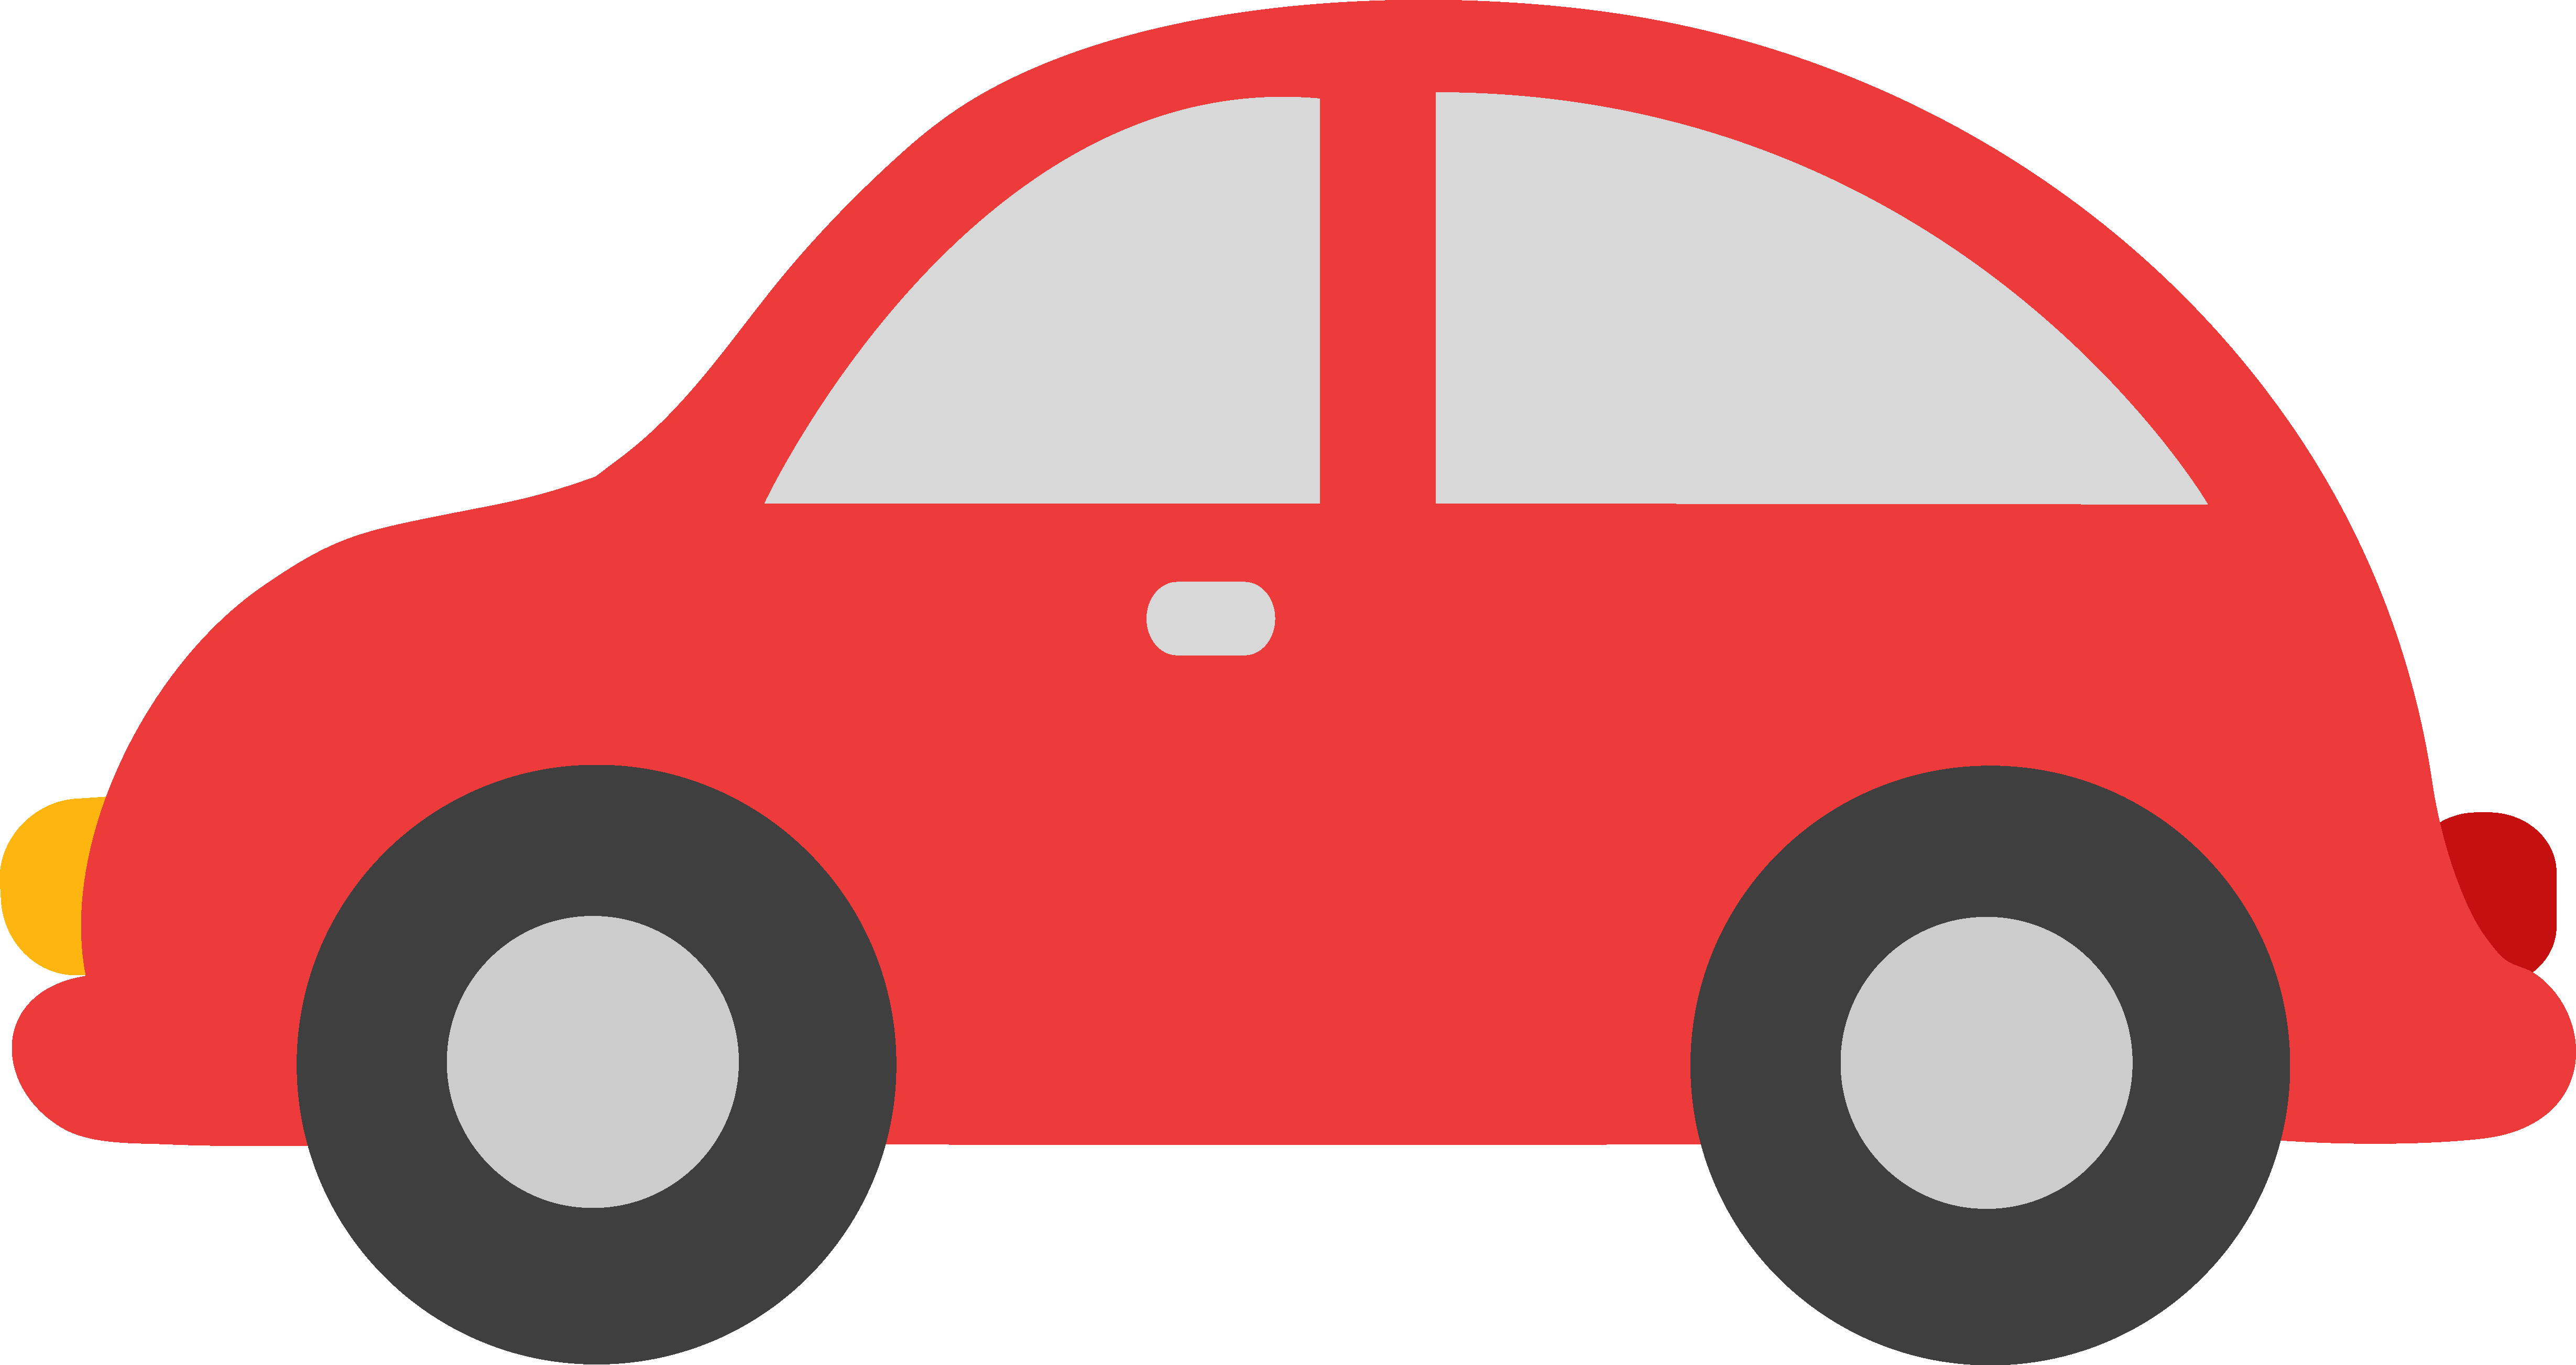 Red cars clipart png clipart beatle car | Red Toy Car Clipart - Free Clip Art | Clipart ... png